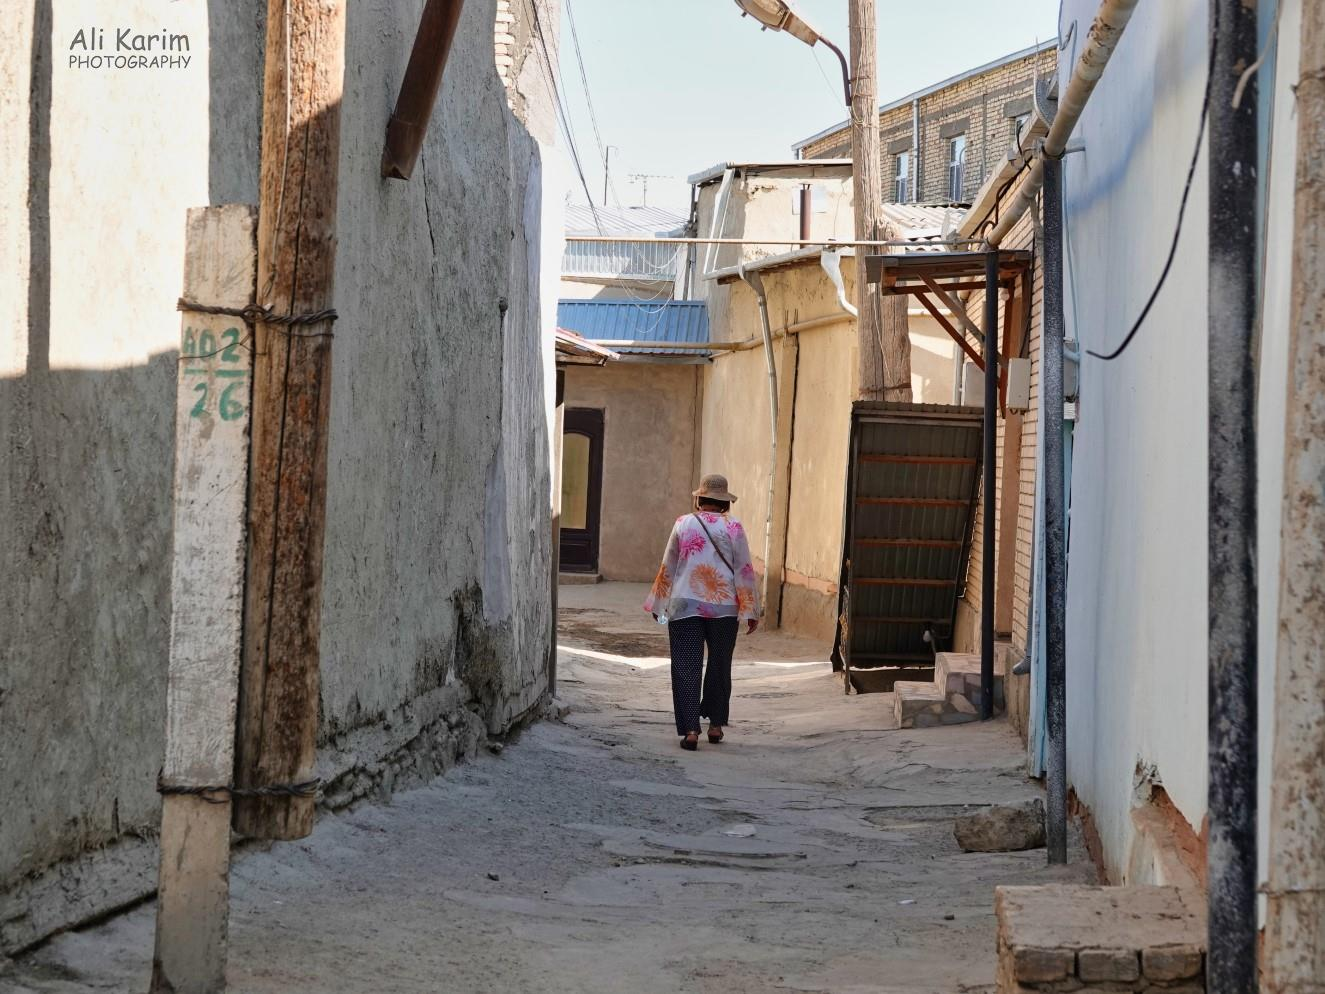 Bukhara, Oct 2019, Ancient alleyways in residential areas